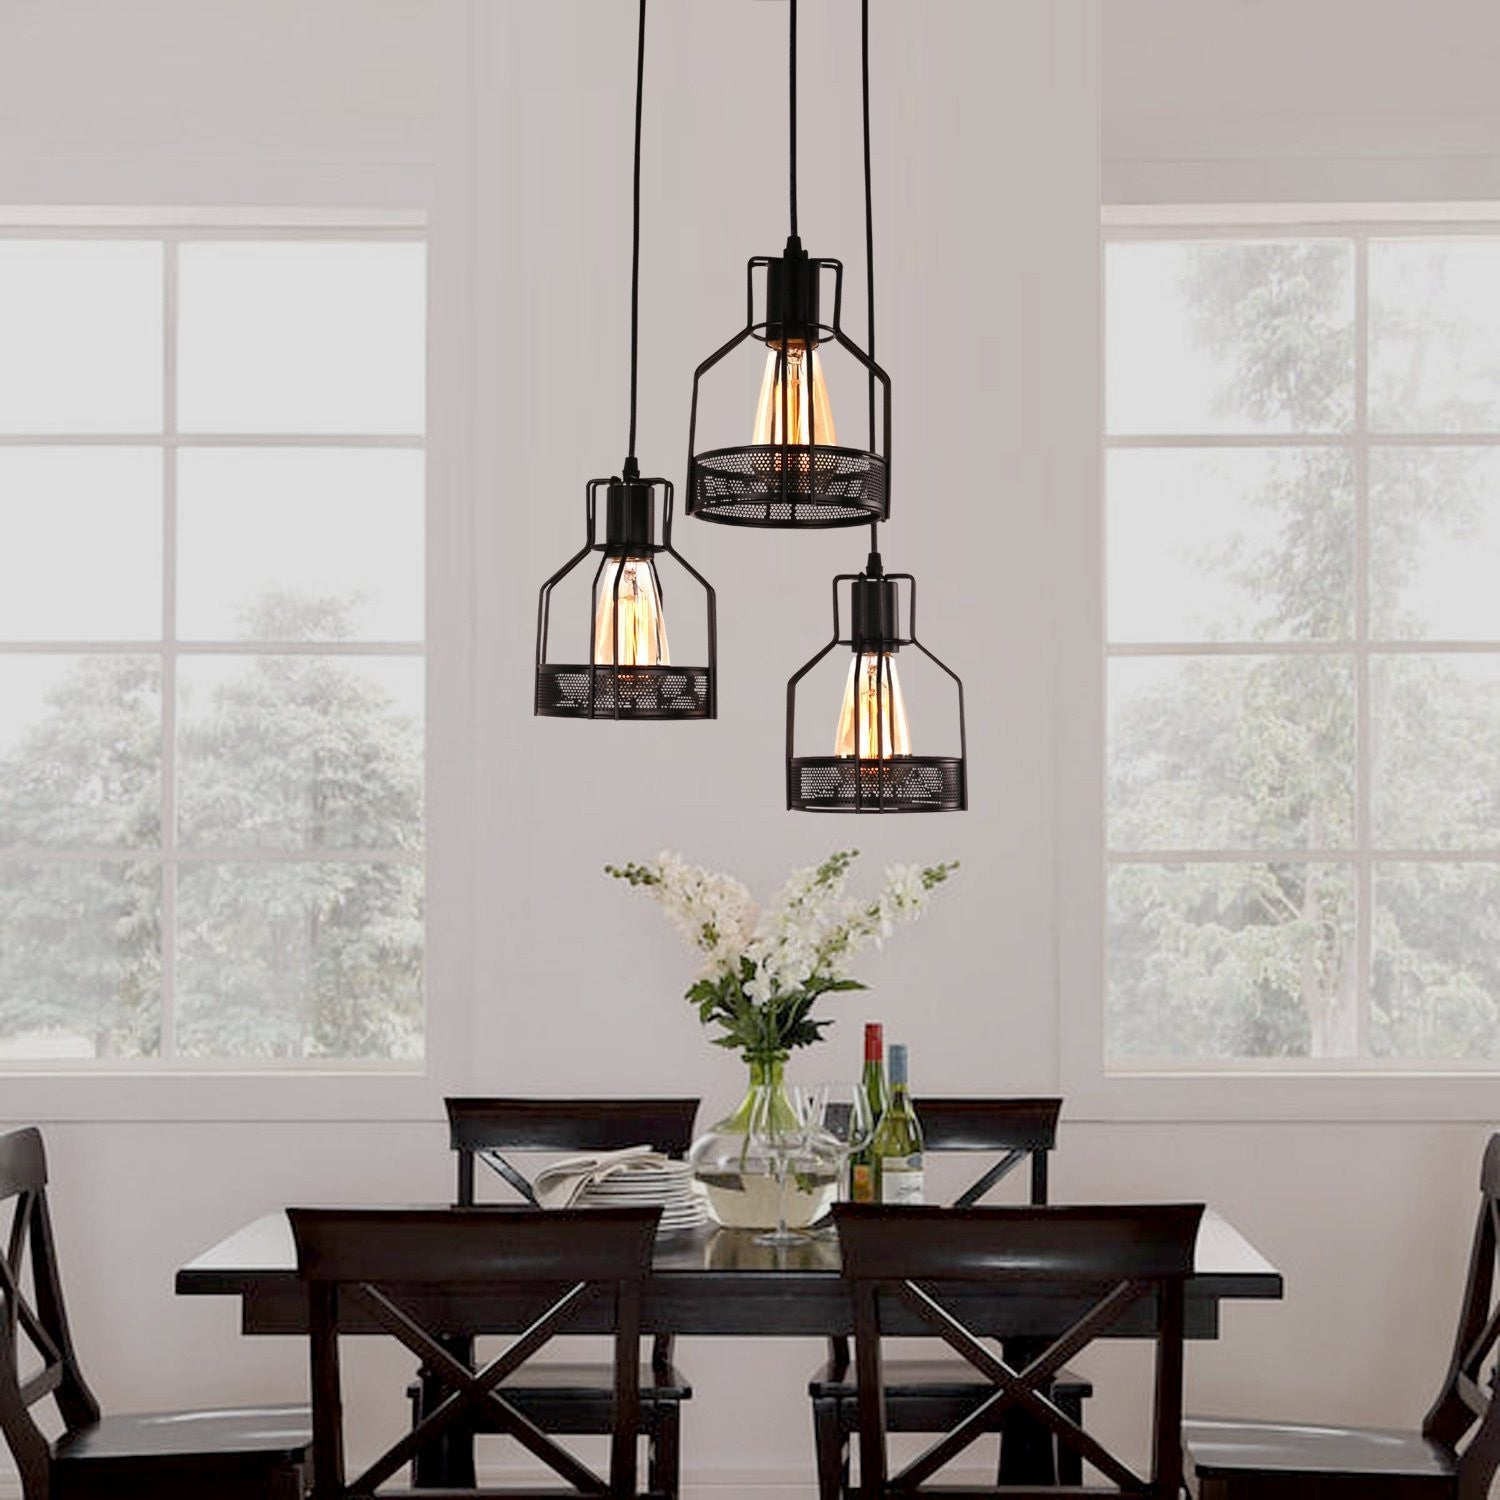 Exceptionnel Unitary Brand Rustic Black Metal Cage Shade Dining Room Pendant Light With  3 E26 Bulb Sockets 120W Painted Finish